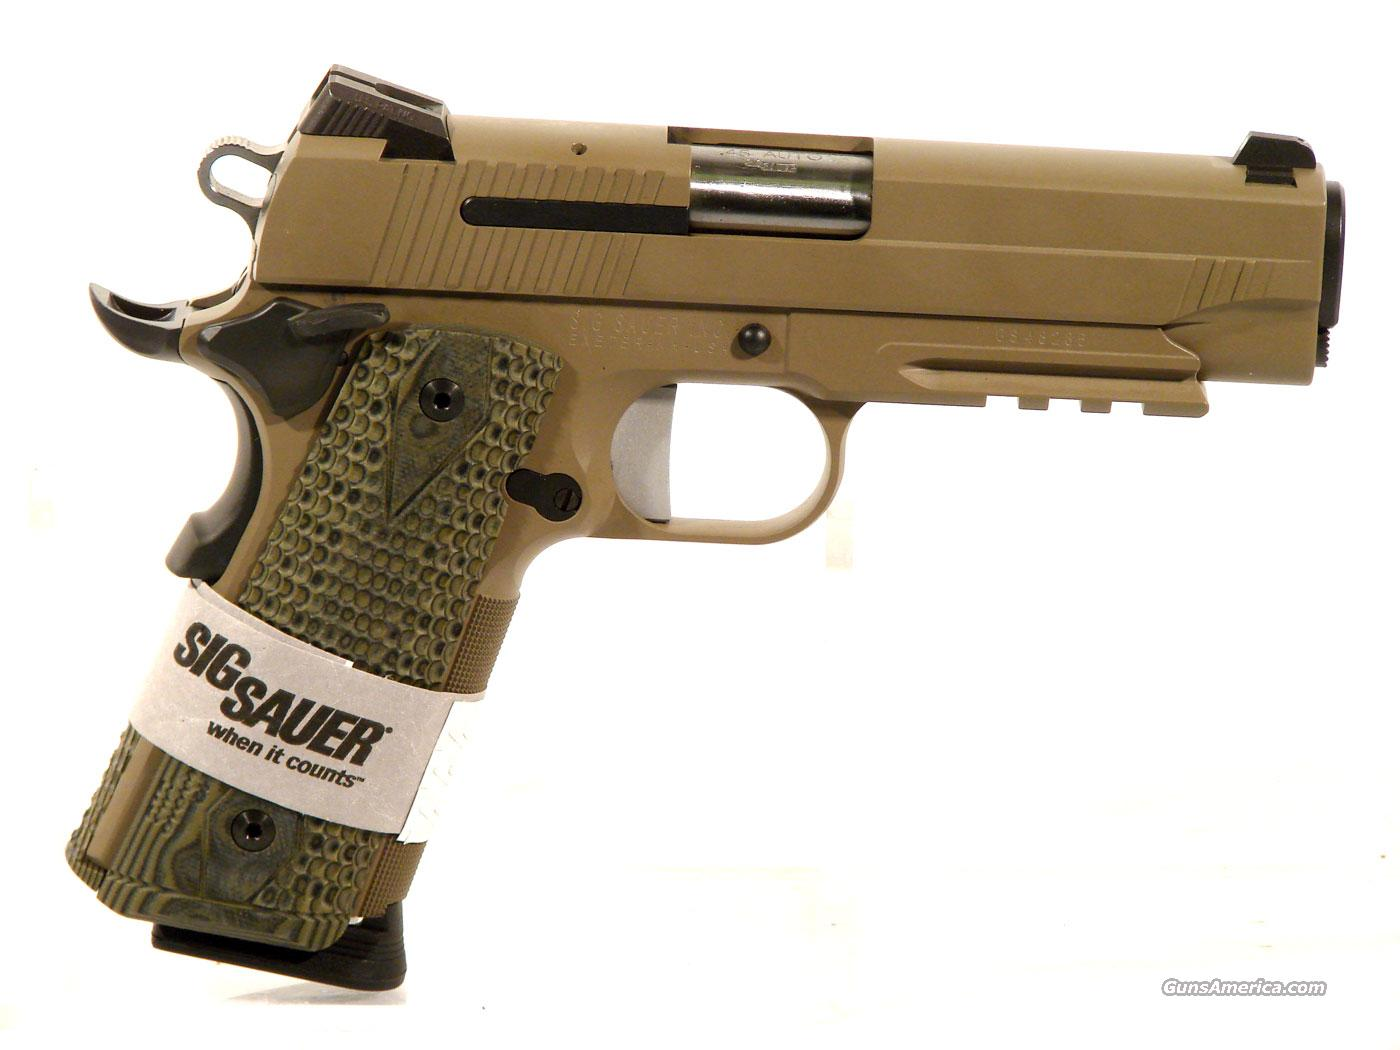 Sig 1911 .45 acp with rail,  Guns > Pistols > Sig - Sauer/Sigarms Pistols > 1911